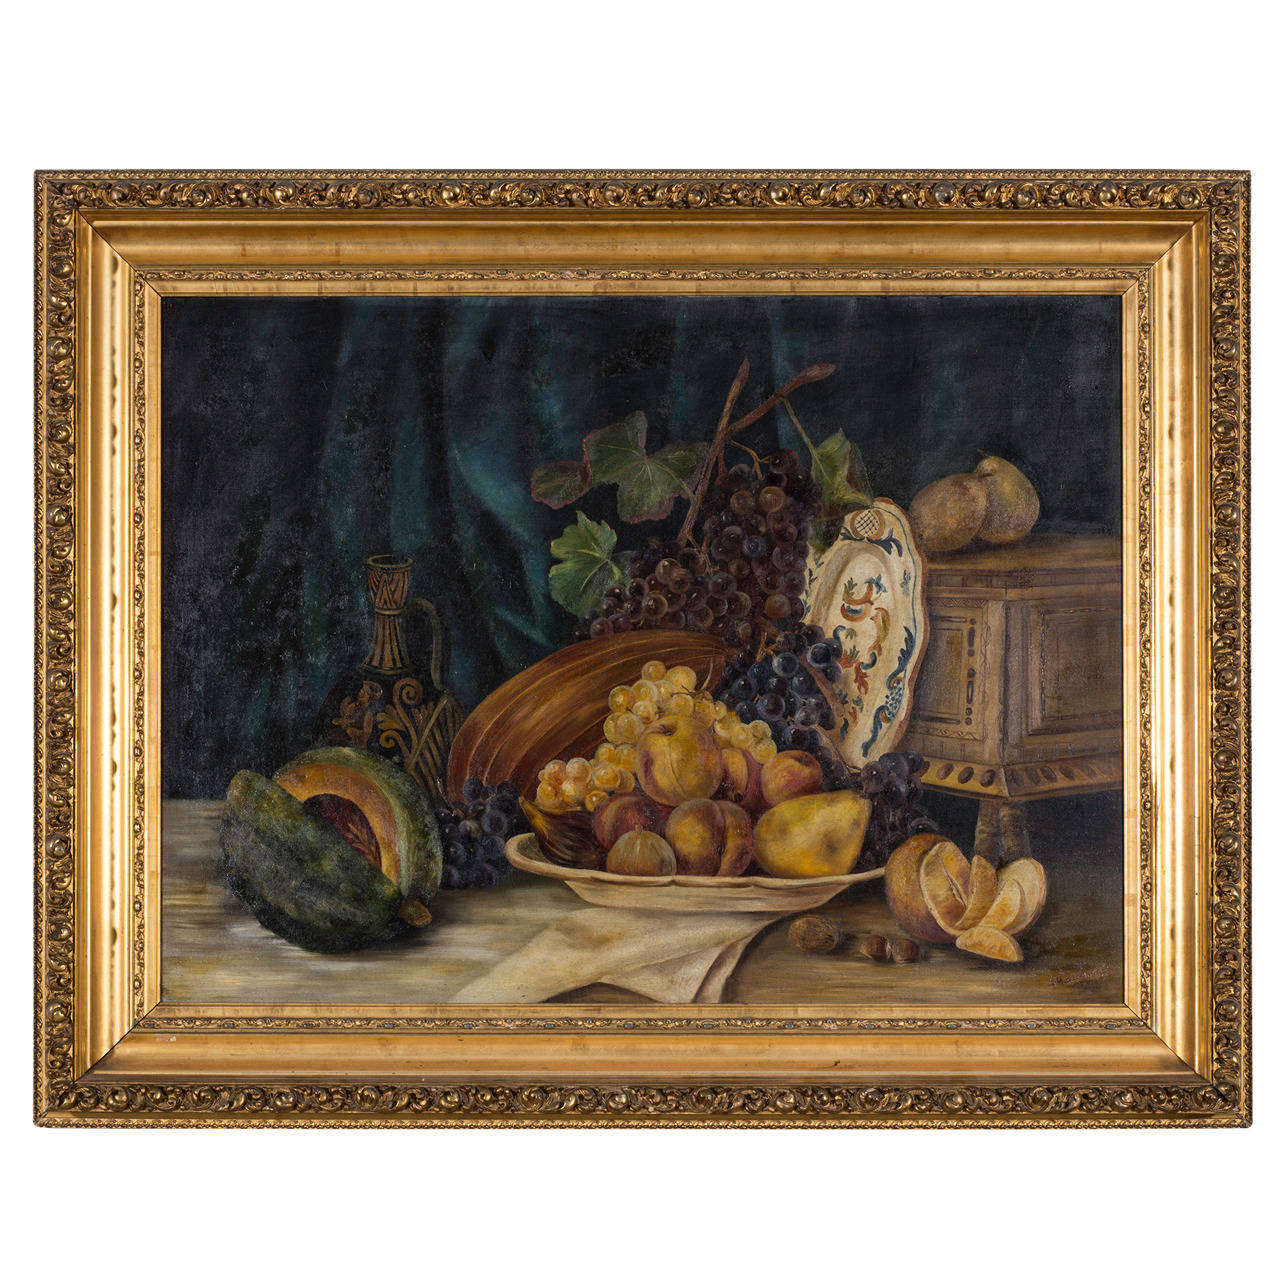 C. 1930s Still Life Oil on Canvas by EF Burkinshaw